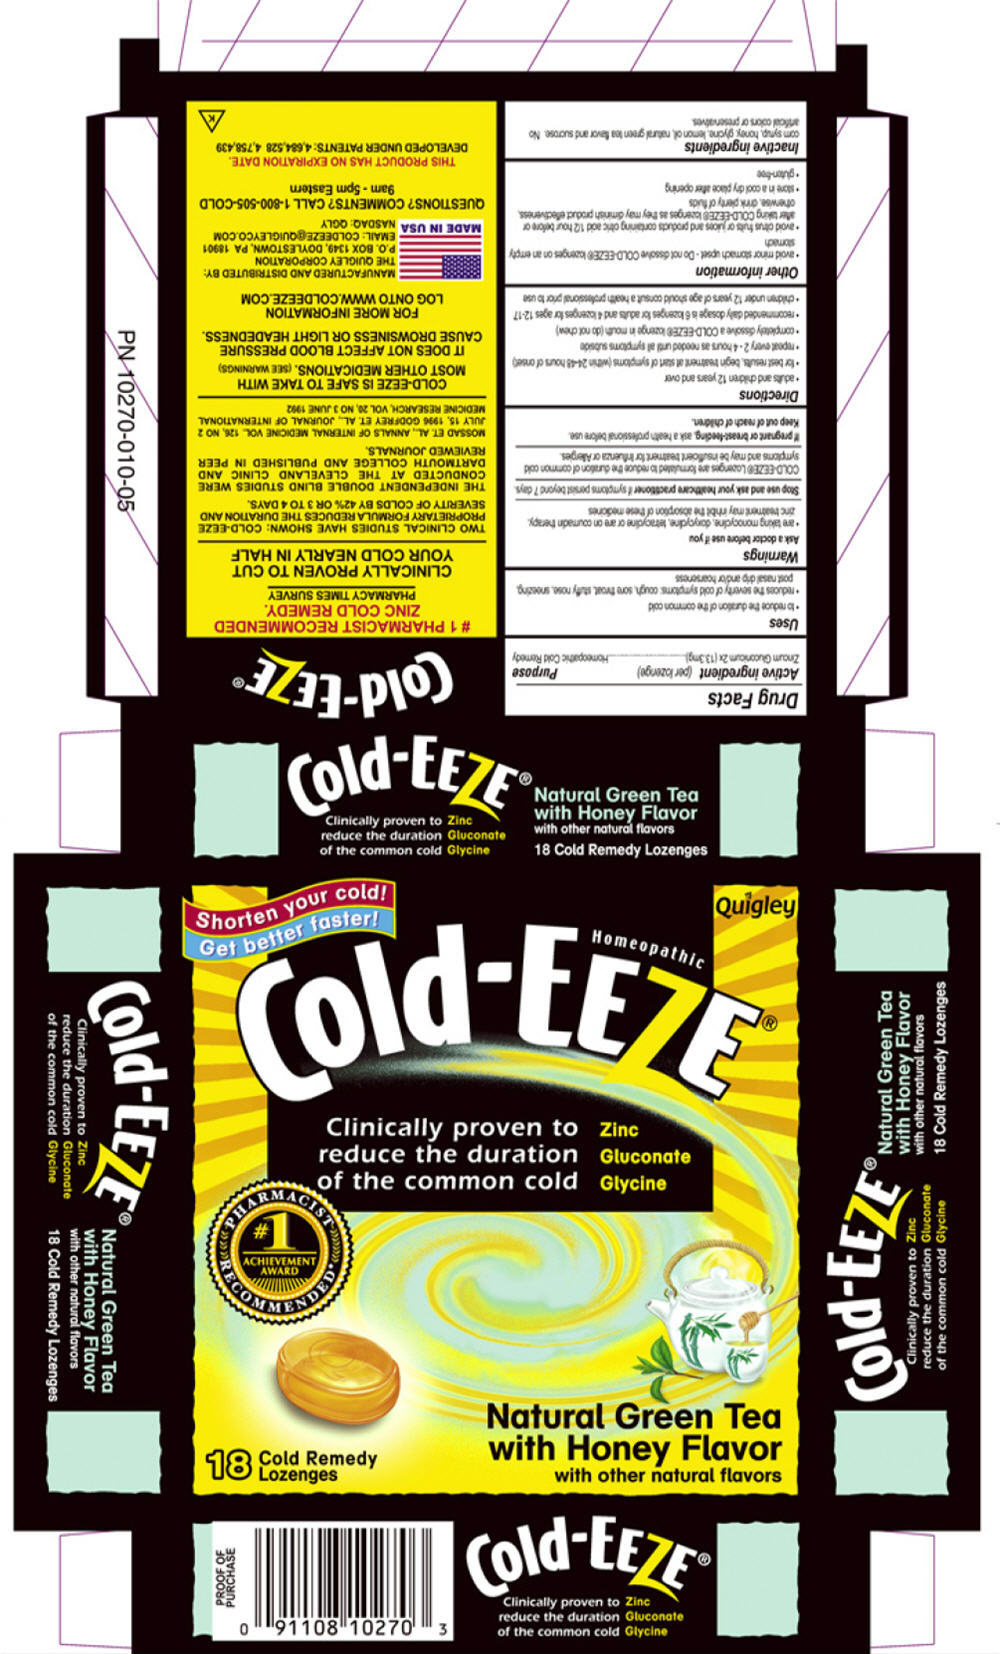 Cold-eeze (Zinc Gluconate) Lozenge [Prophase Labs, Inc.]